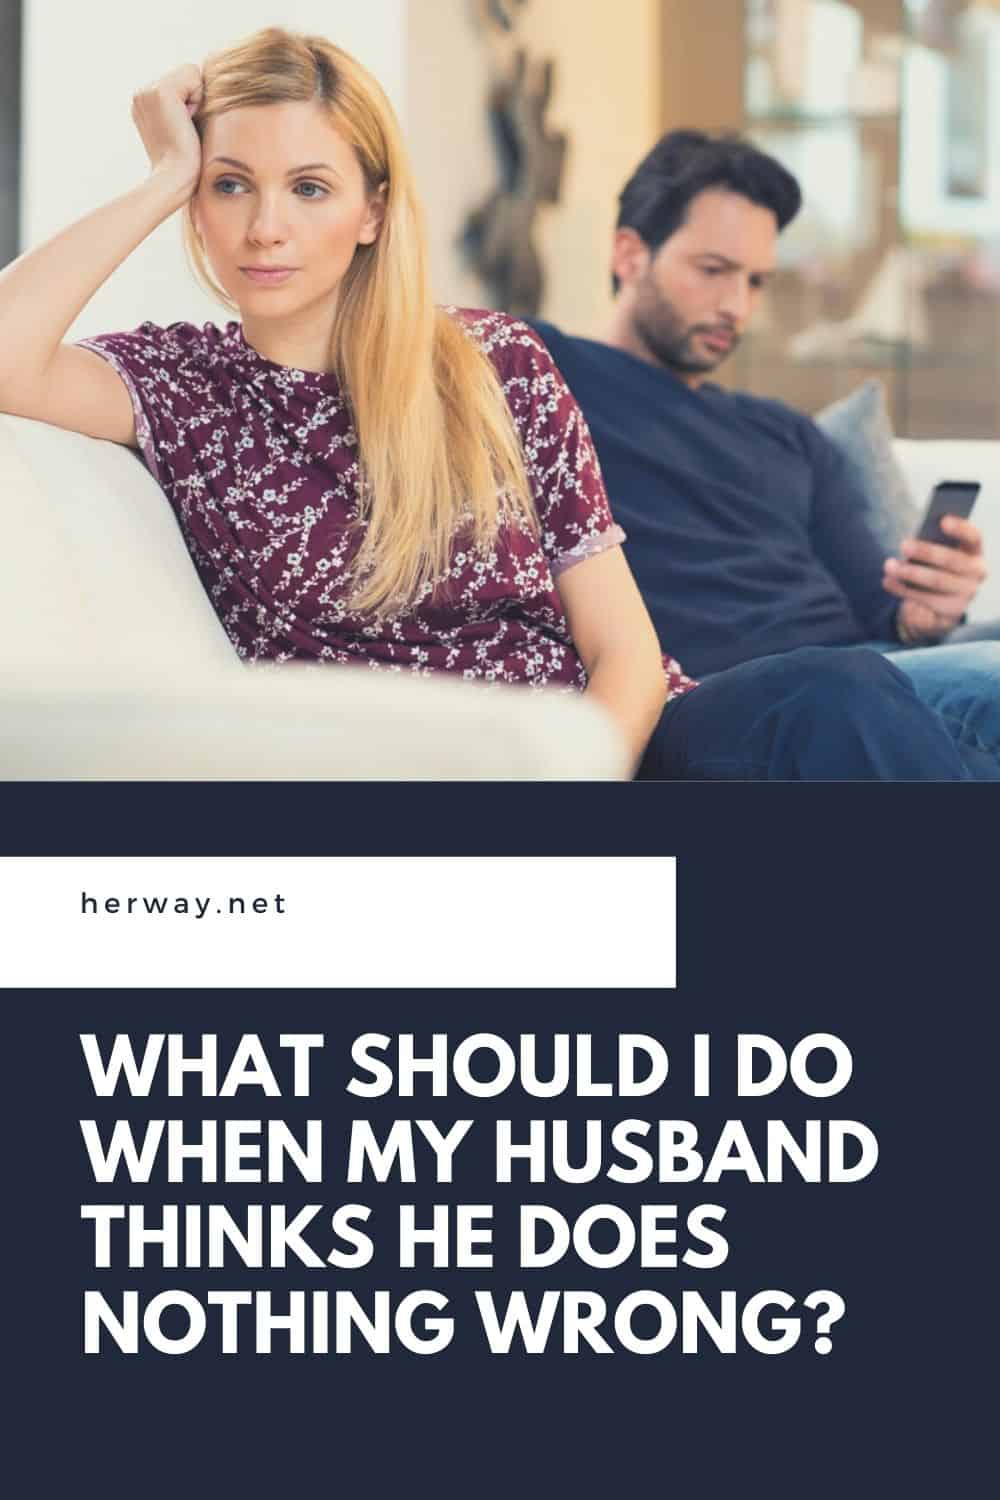 What Should I Do When My Husband Thinks He Does Nothing Wrong